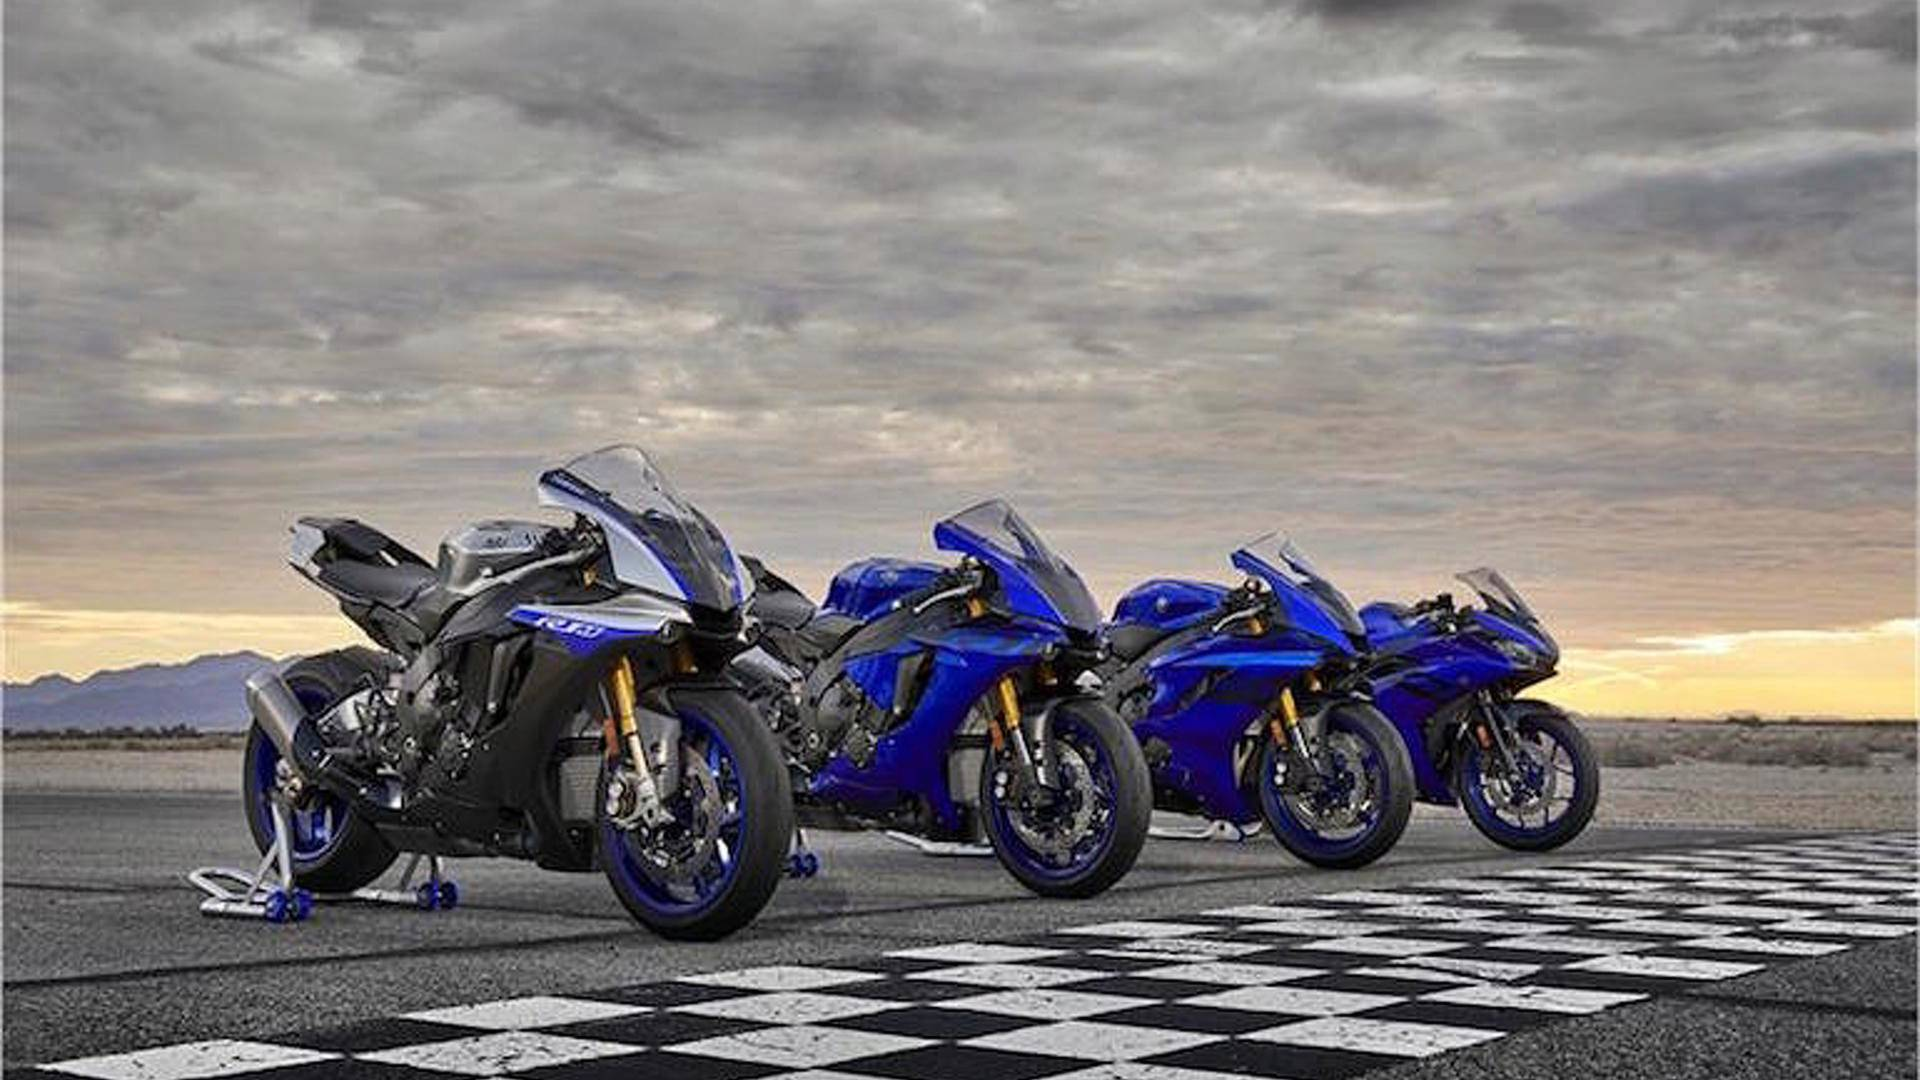 R1 R6 Or R3 Which Sportbike Fits You